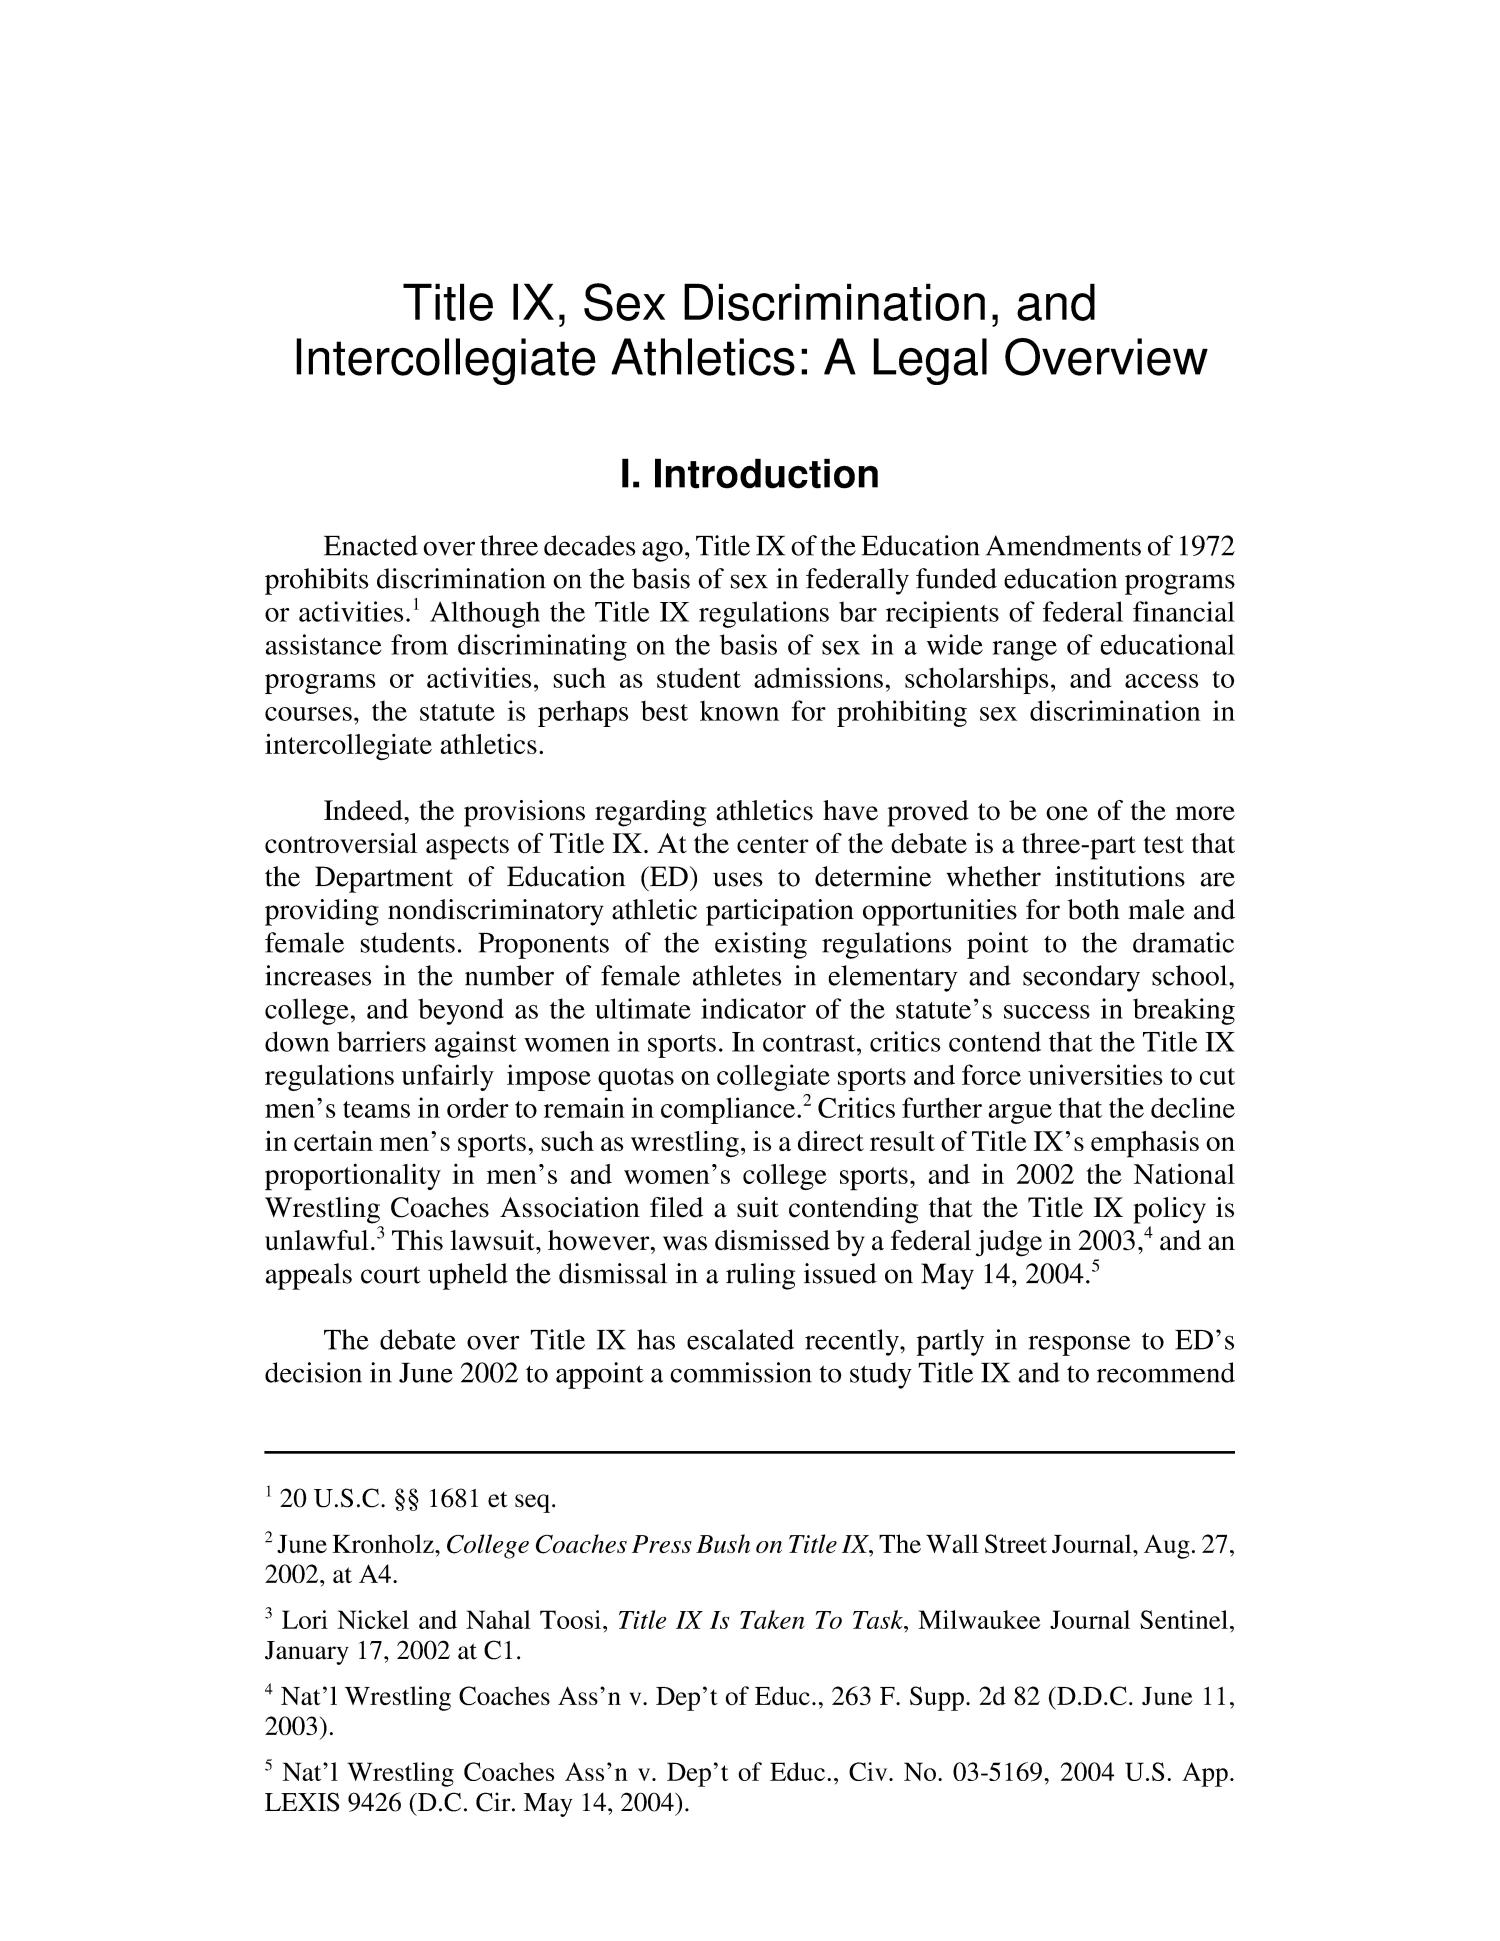 Title IX, Sex Discrimination, and Intercollegiate Athletics: A Legal Overview                                                                                                      [Sequence #]: 4 of 20